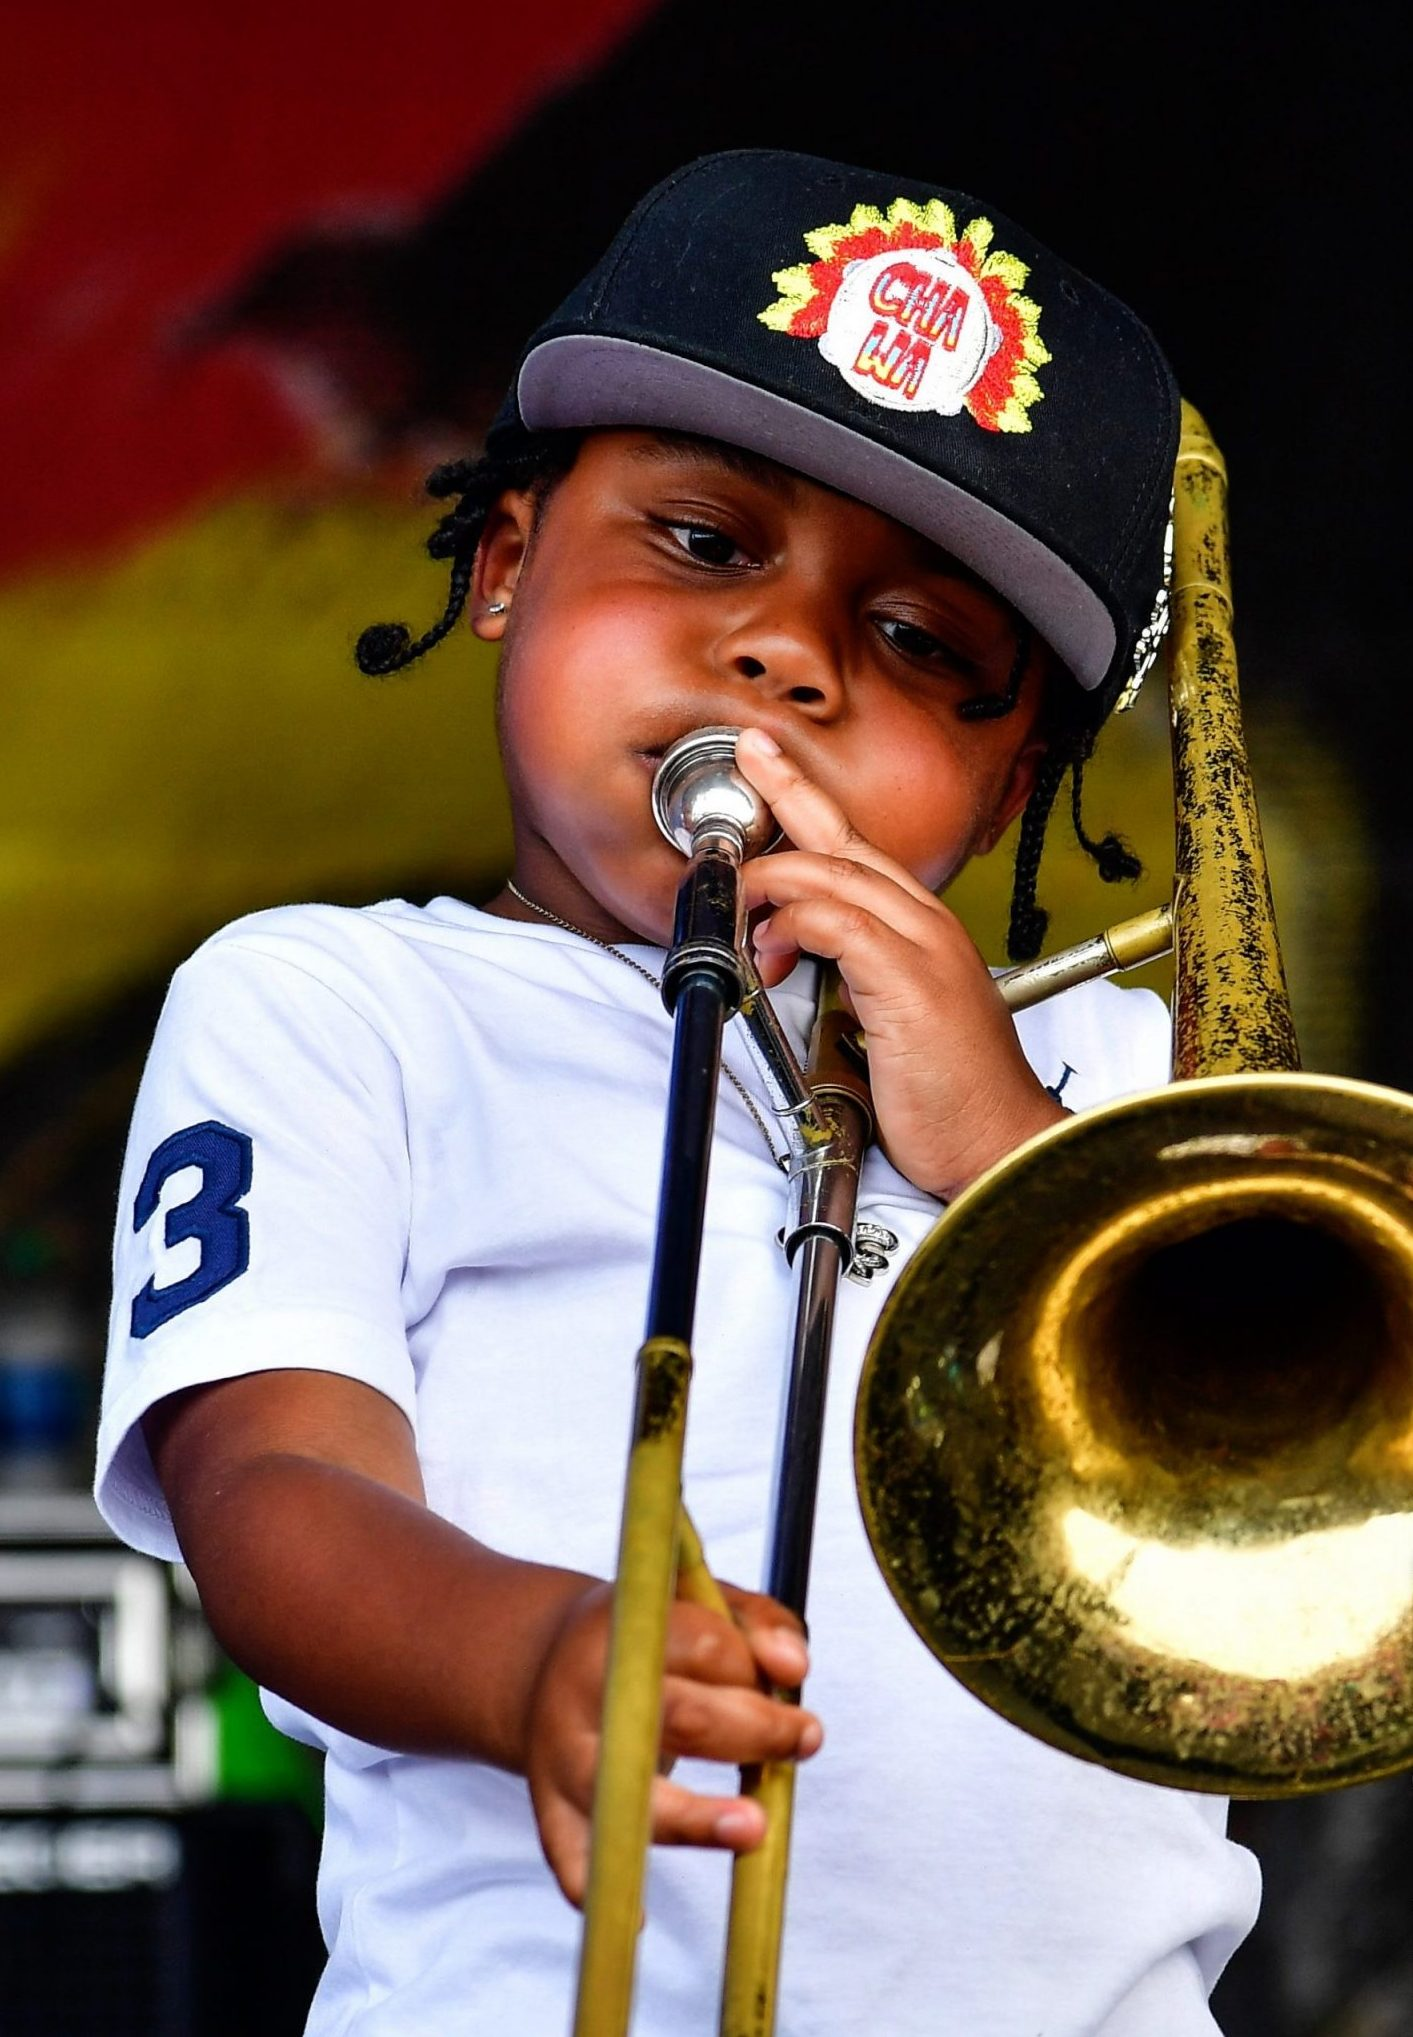 Erika Gorldring Photography boy with Trombone